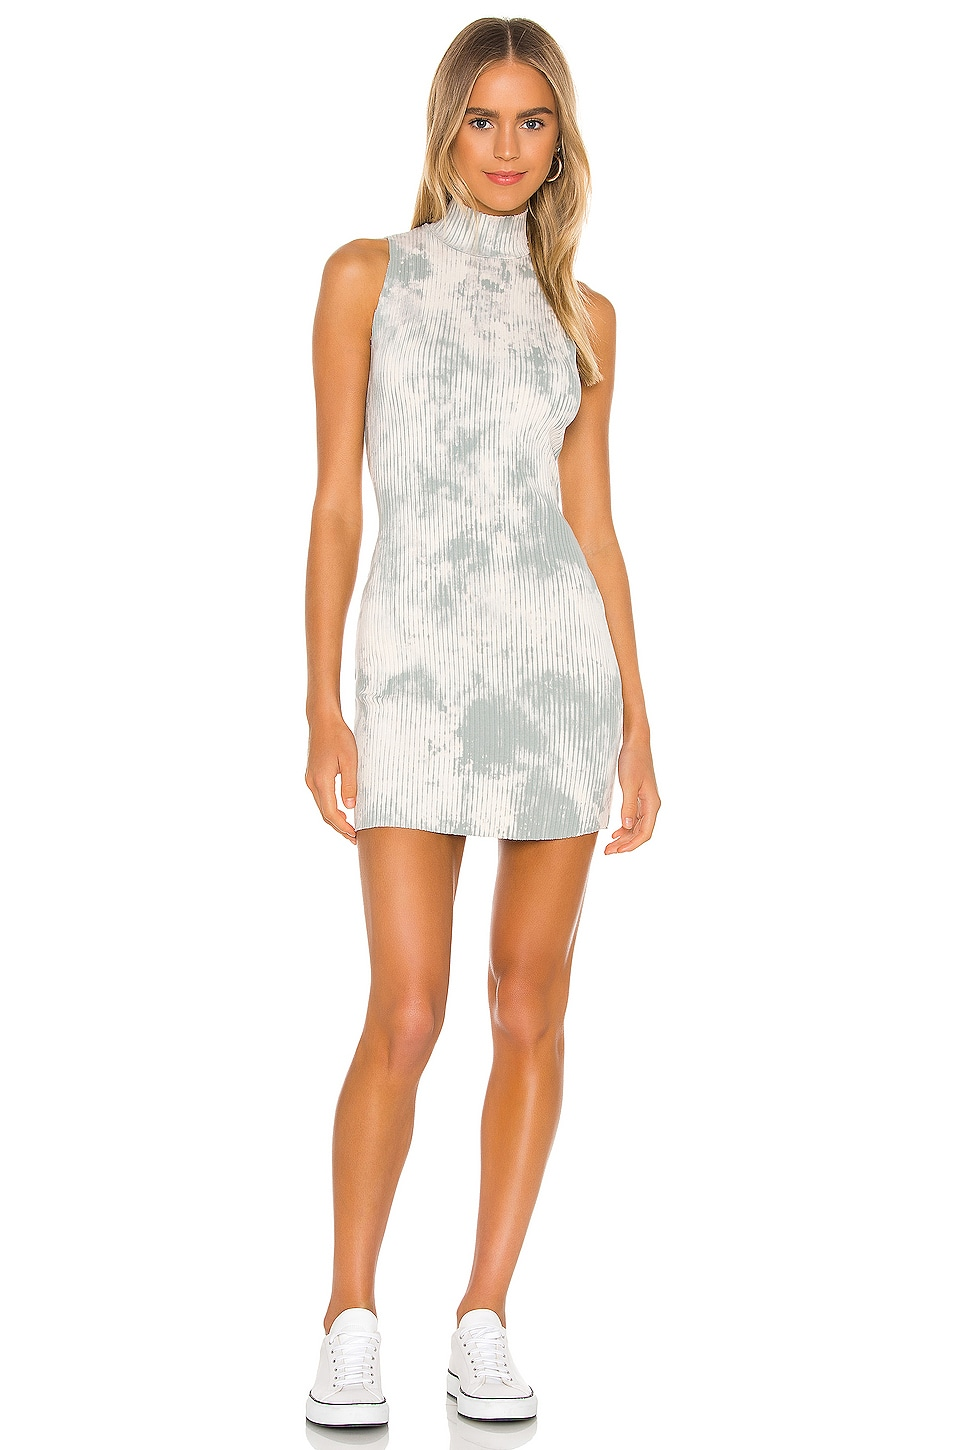 x REVOLVE Ibiza Racerback Dress XO             COTTON CITIZEN                                                                                                       CA$ 224.67 12